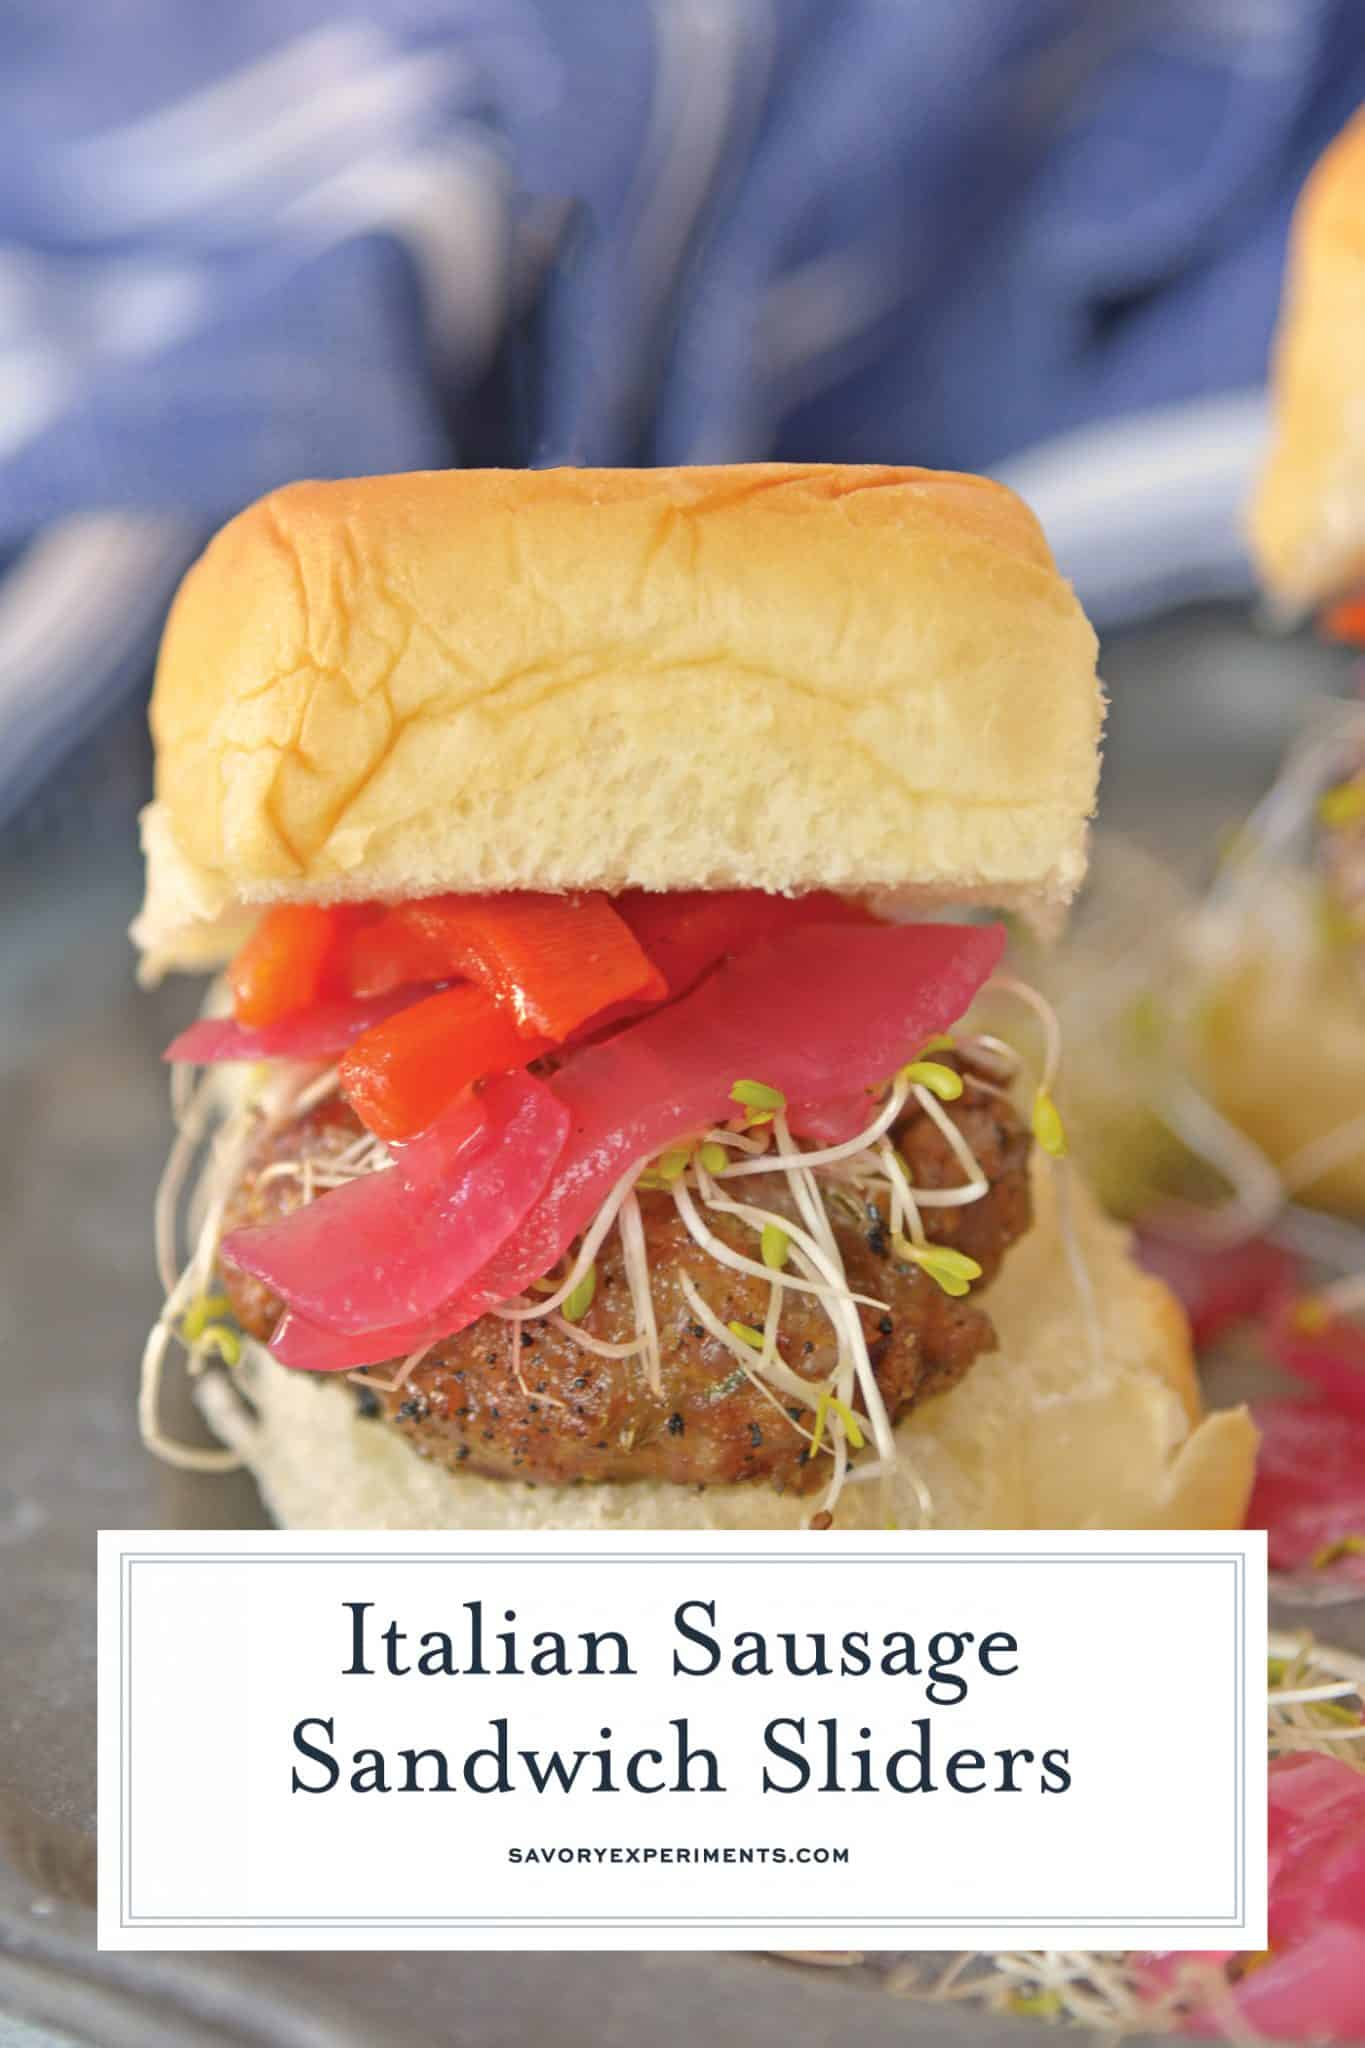 These Italian Sausage Sandwich Sliders are easy to prepare and even easier to eat. Featuring pork sausage and Hawaiian rolls,they are sure to impress.#italiansausagesandwichsliders #hawaiianrollsliders www.savoryexperiments.com